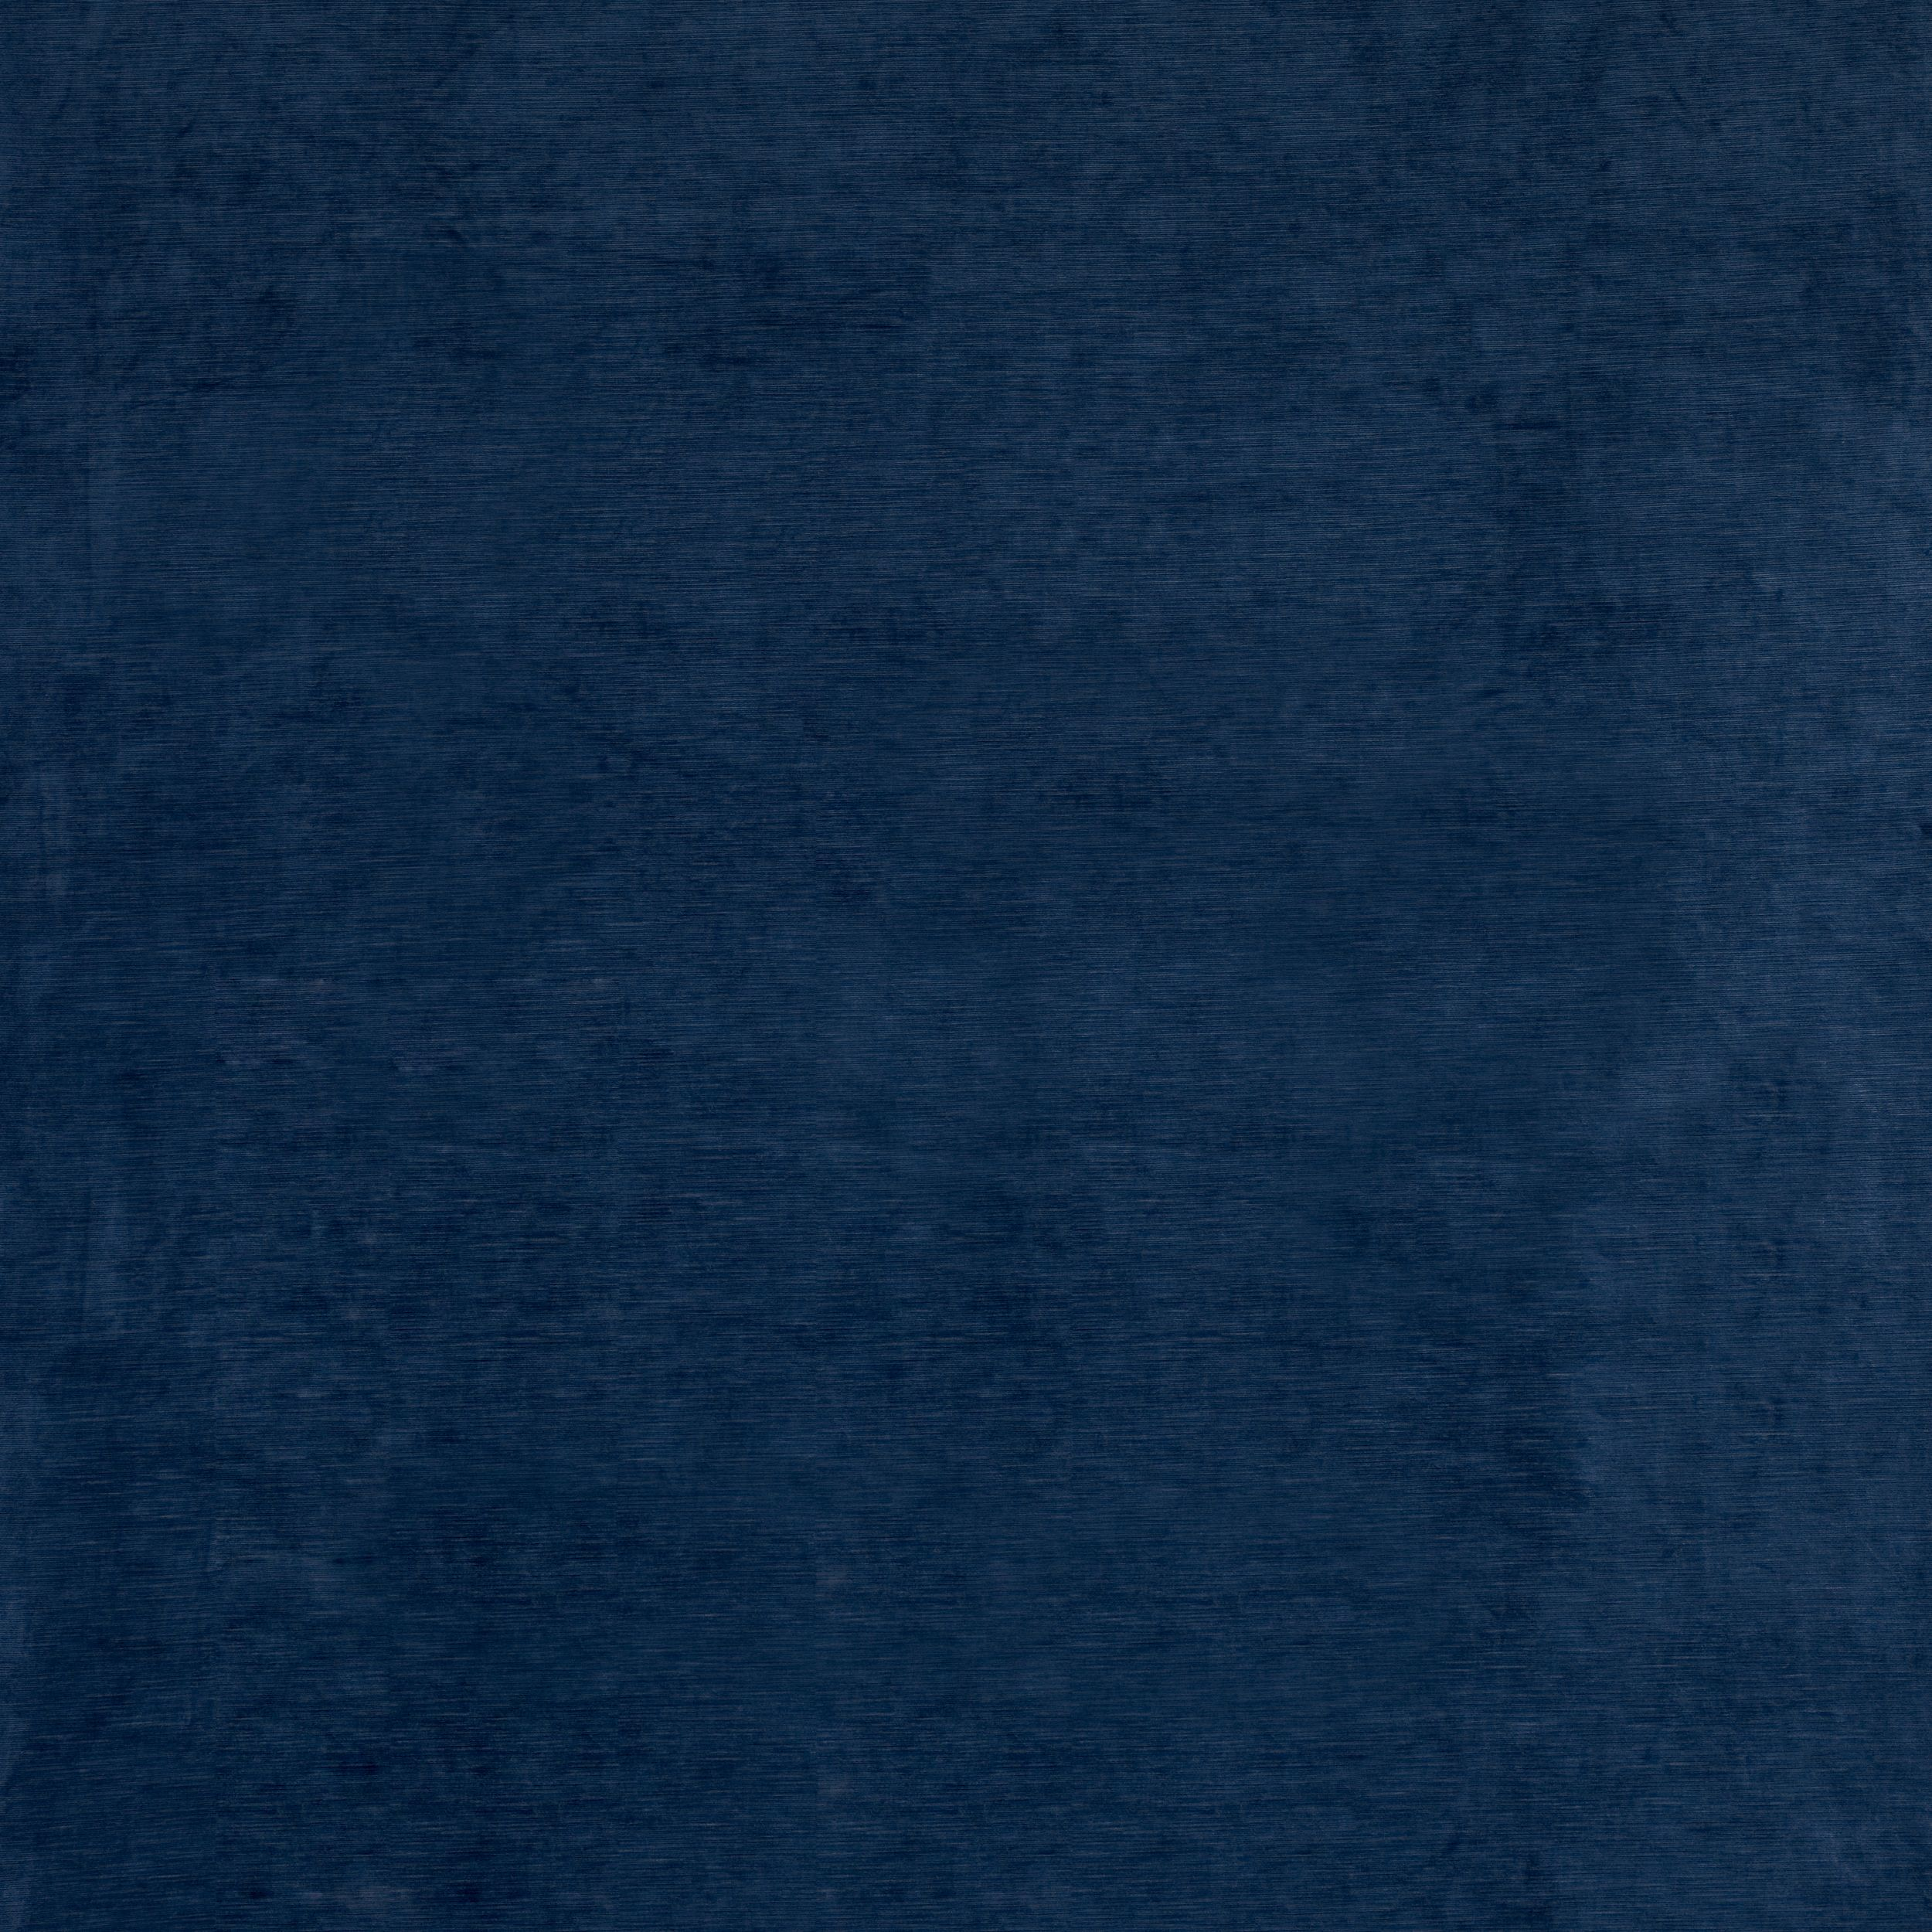 Laura Ashley Blue Velvet Upholstery Design Blue Velvet